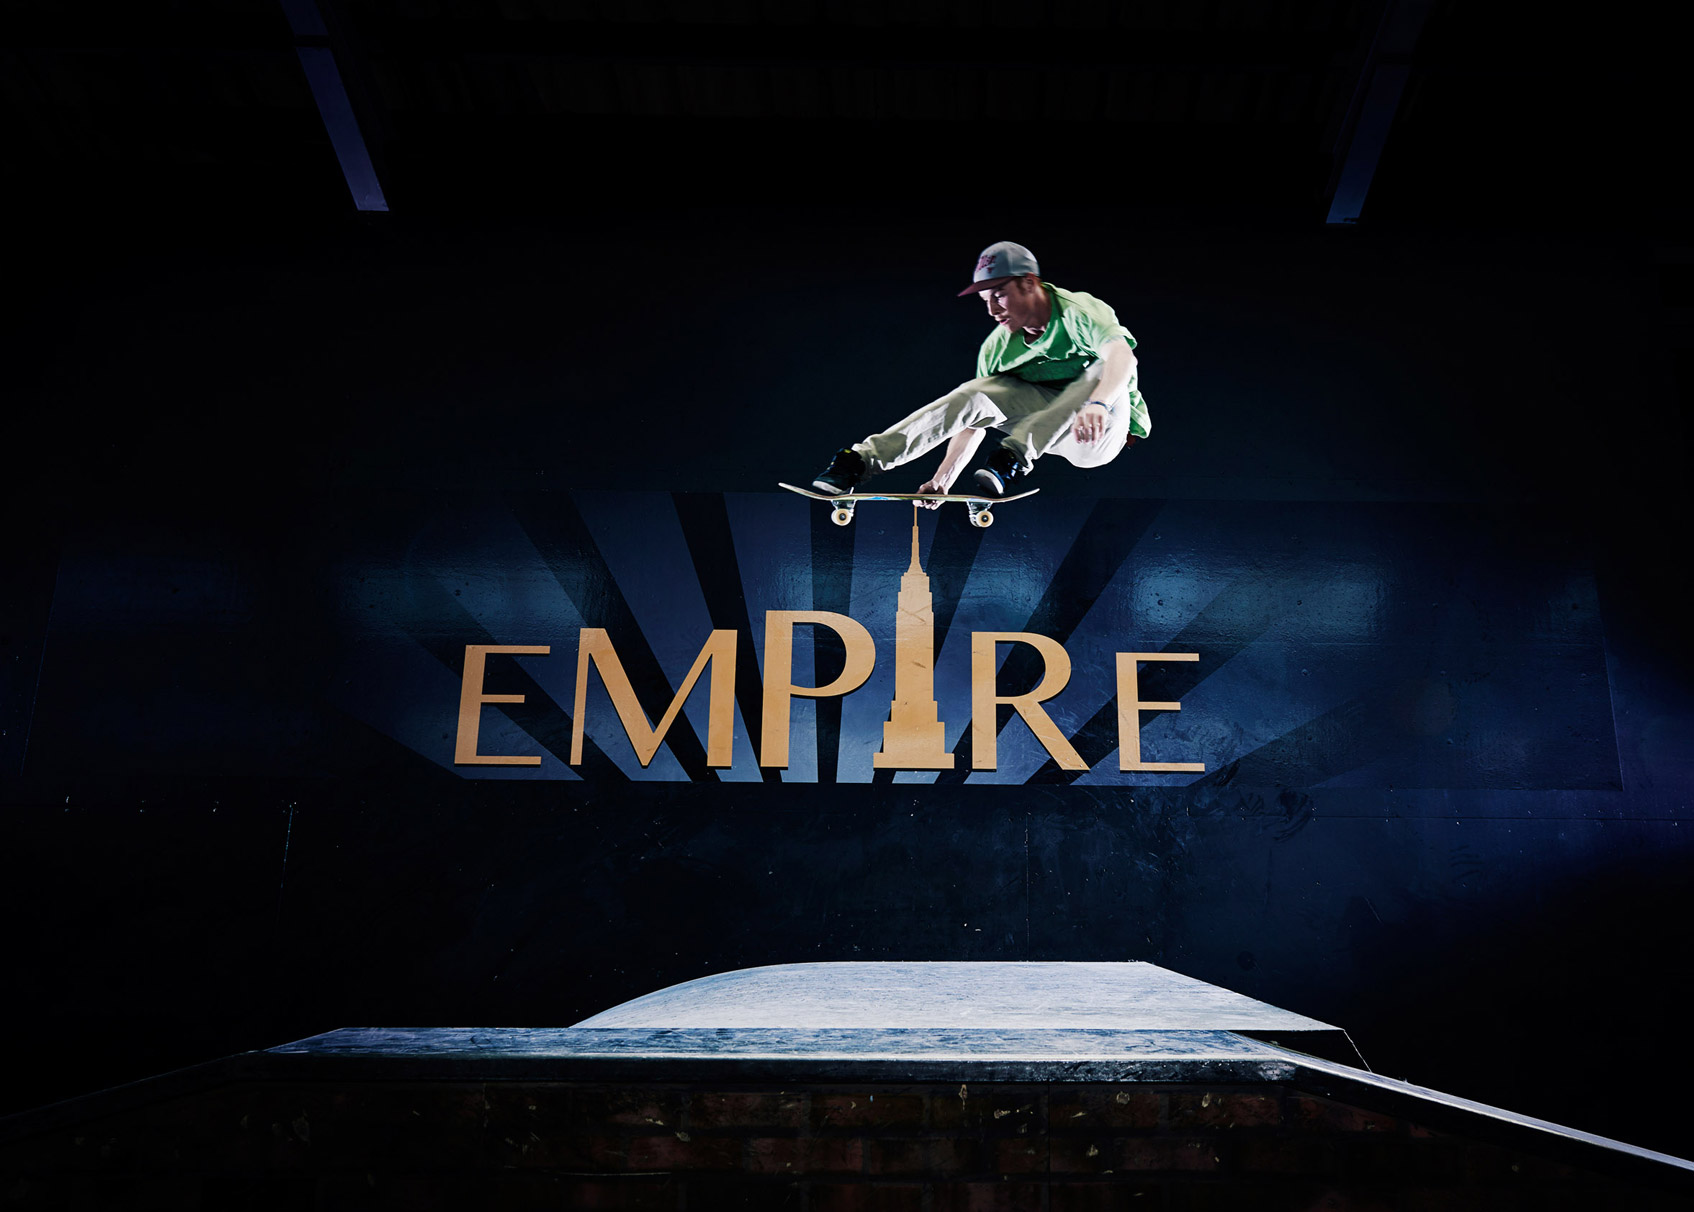 Skateboarder jumps over the Empire logo